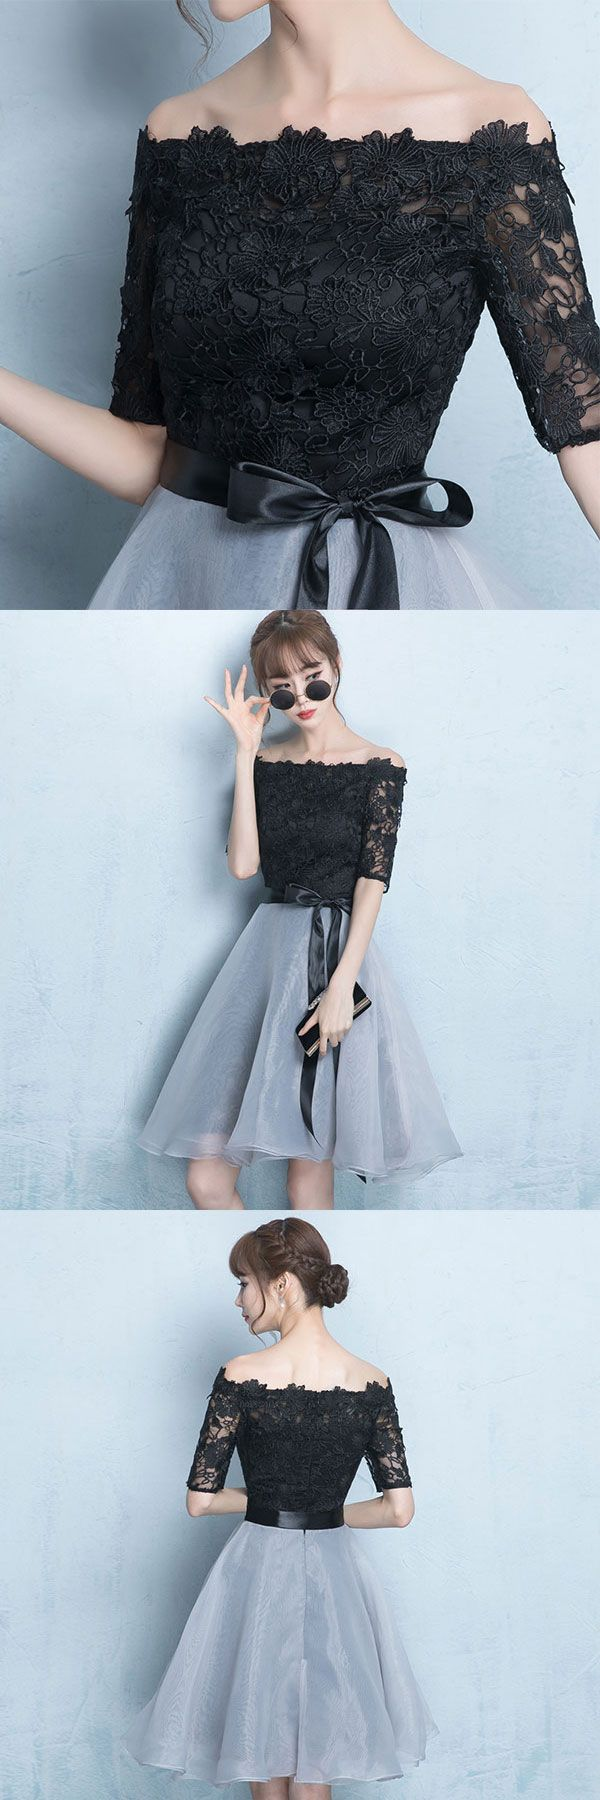 of girl | Black lace and gray tulle short prom dress, homecoming dress | Online Store Powered by Storenvy